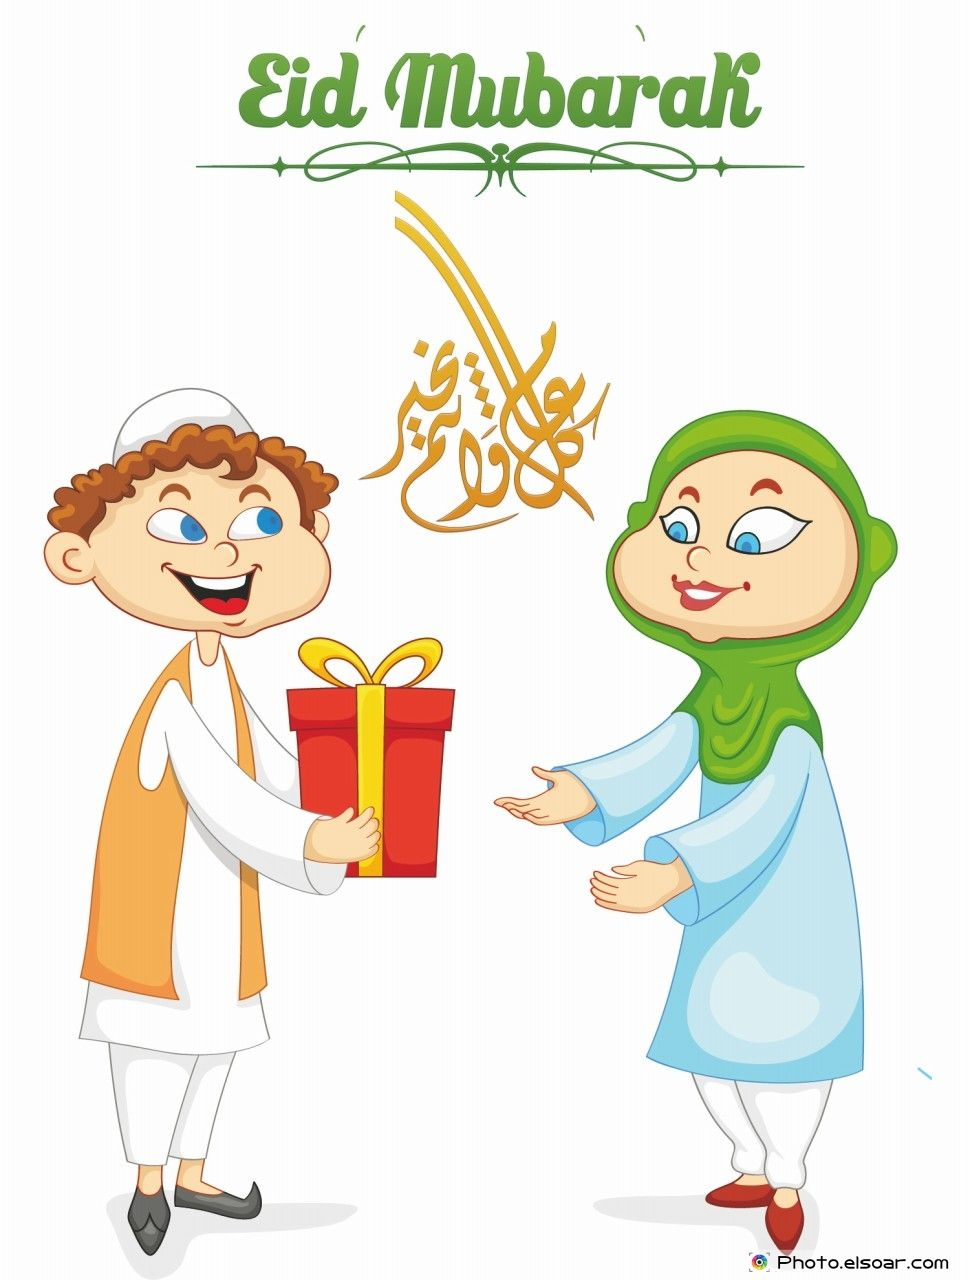 2016 clipart eid mubarak. With husband and wife